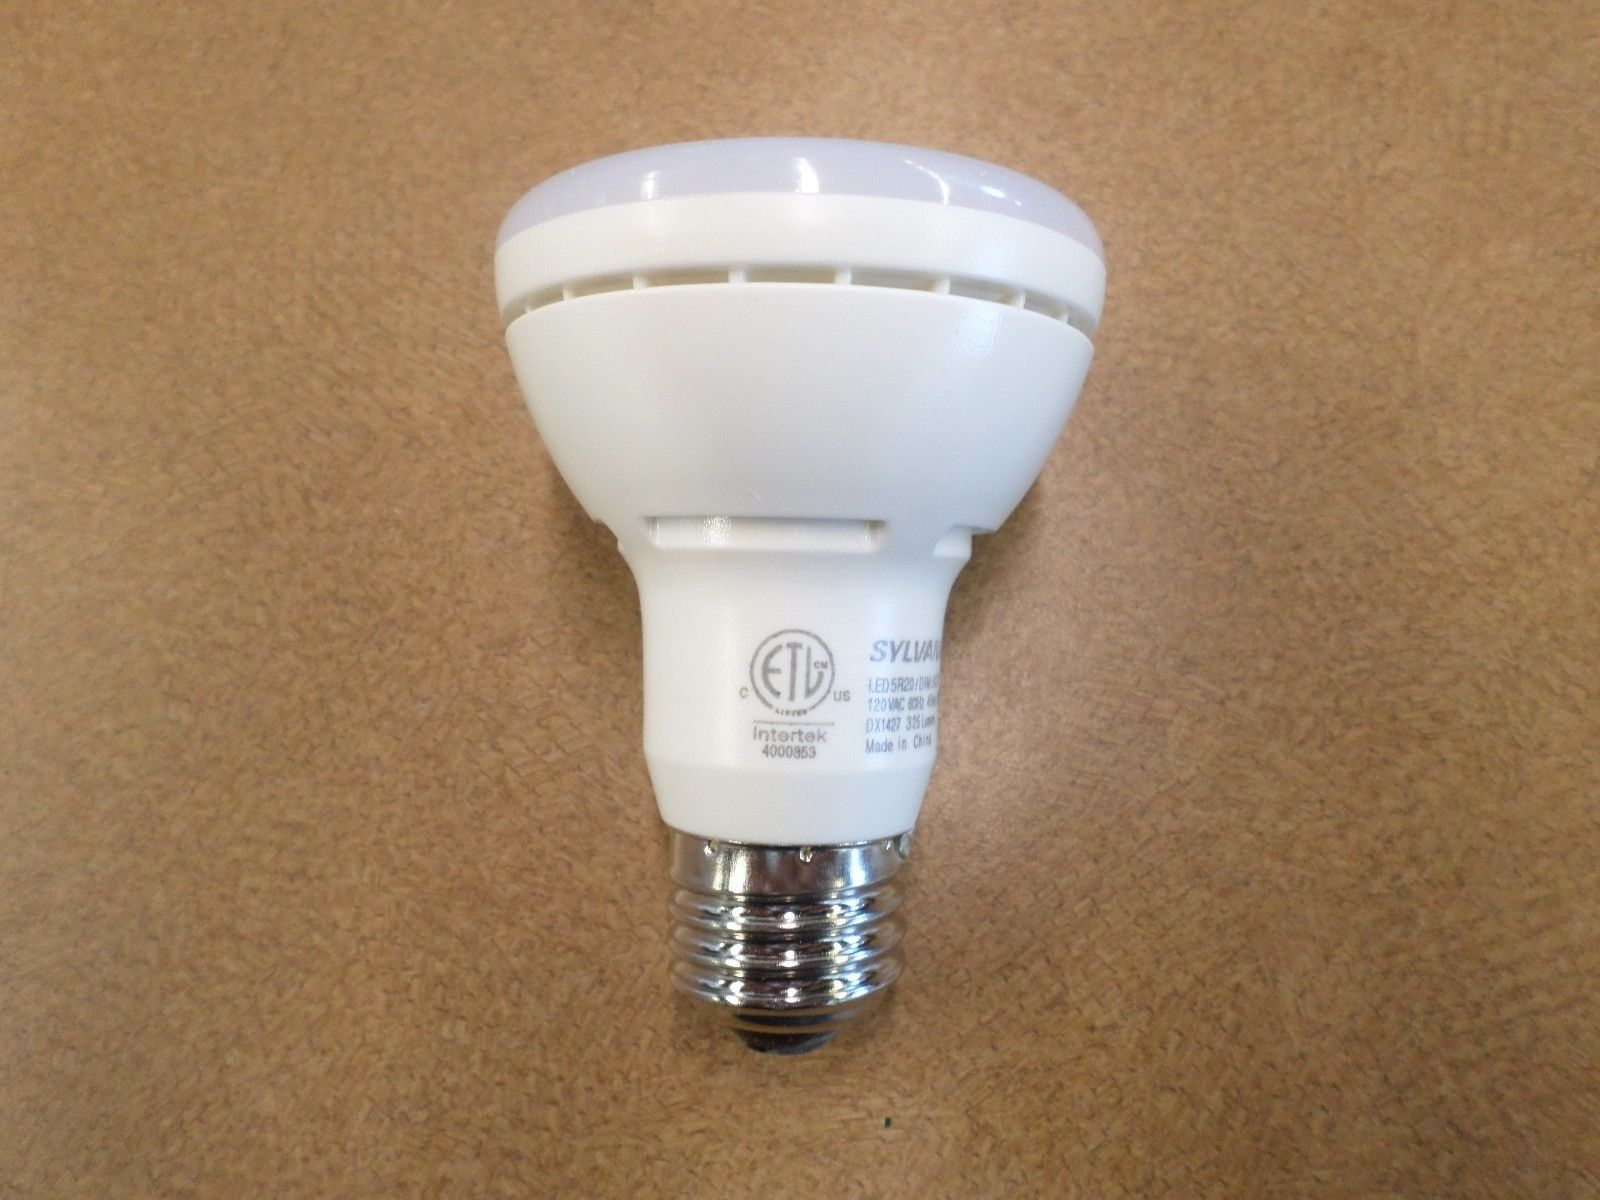 Primary image for Sylvania R20 Dimmable 5W 120V Indoor/Outdoor Bulb